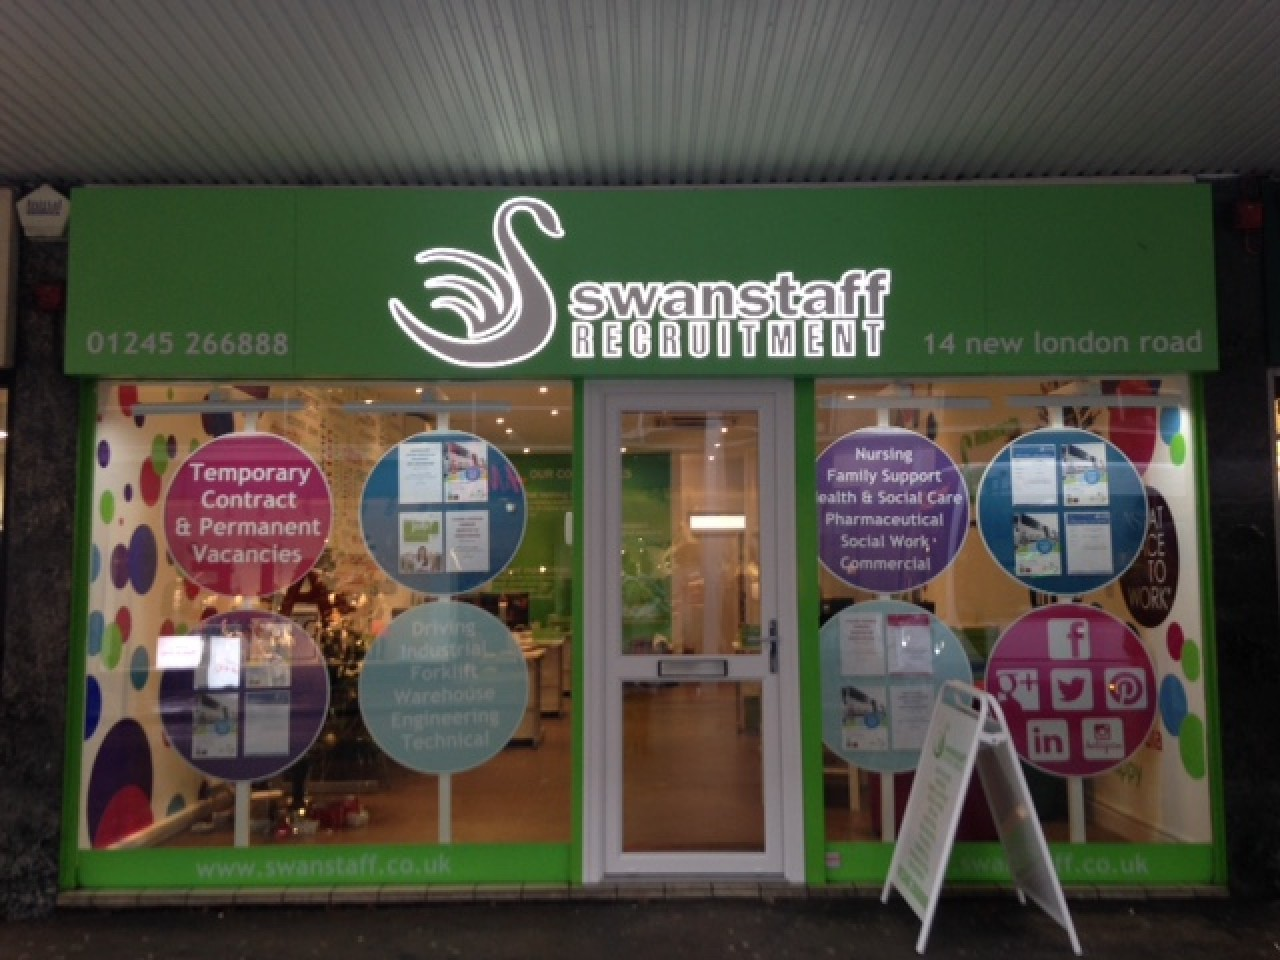 Swanstaff Recruitment undergo regeneration for new shop front at the Chelmsford branch